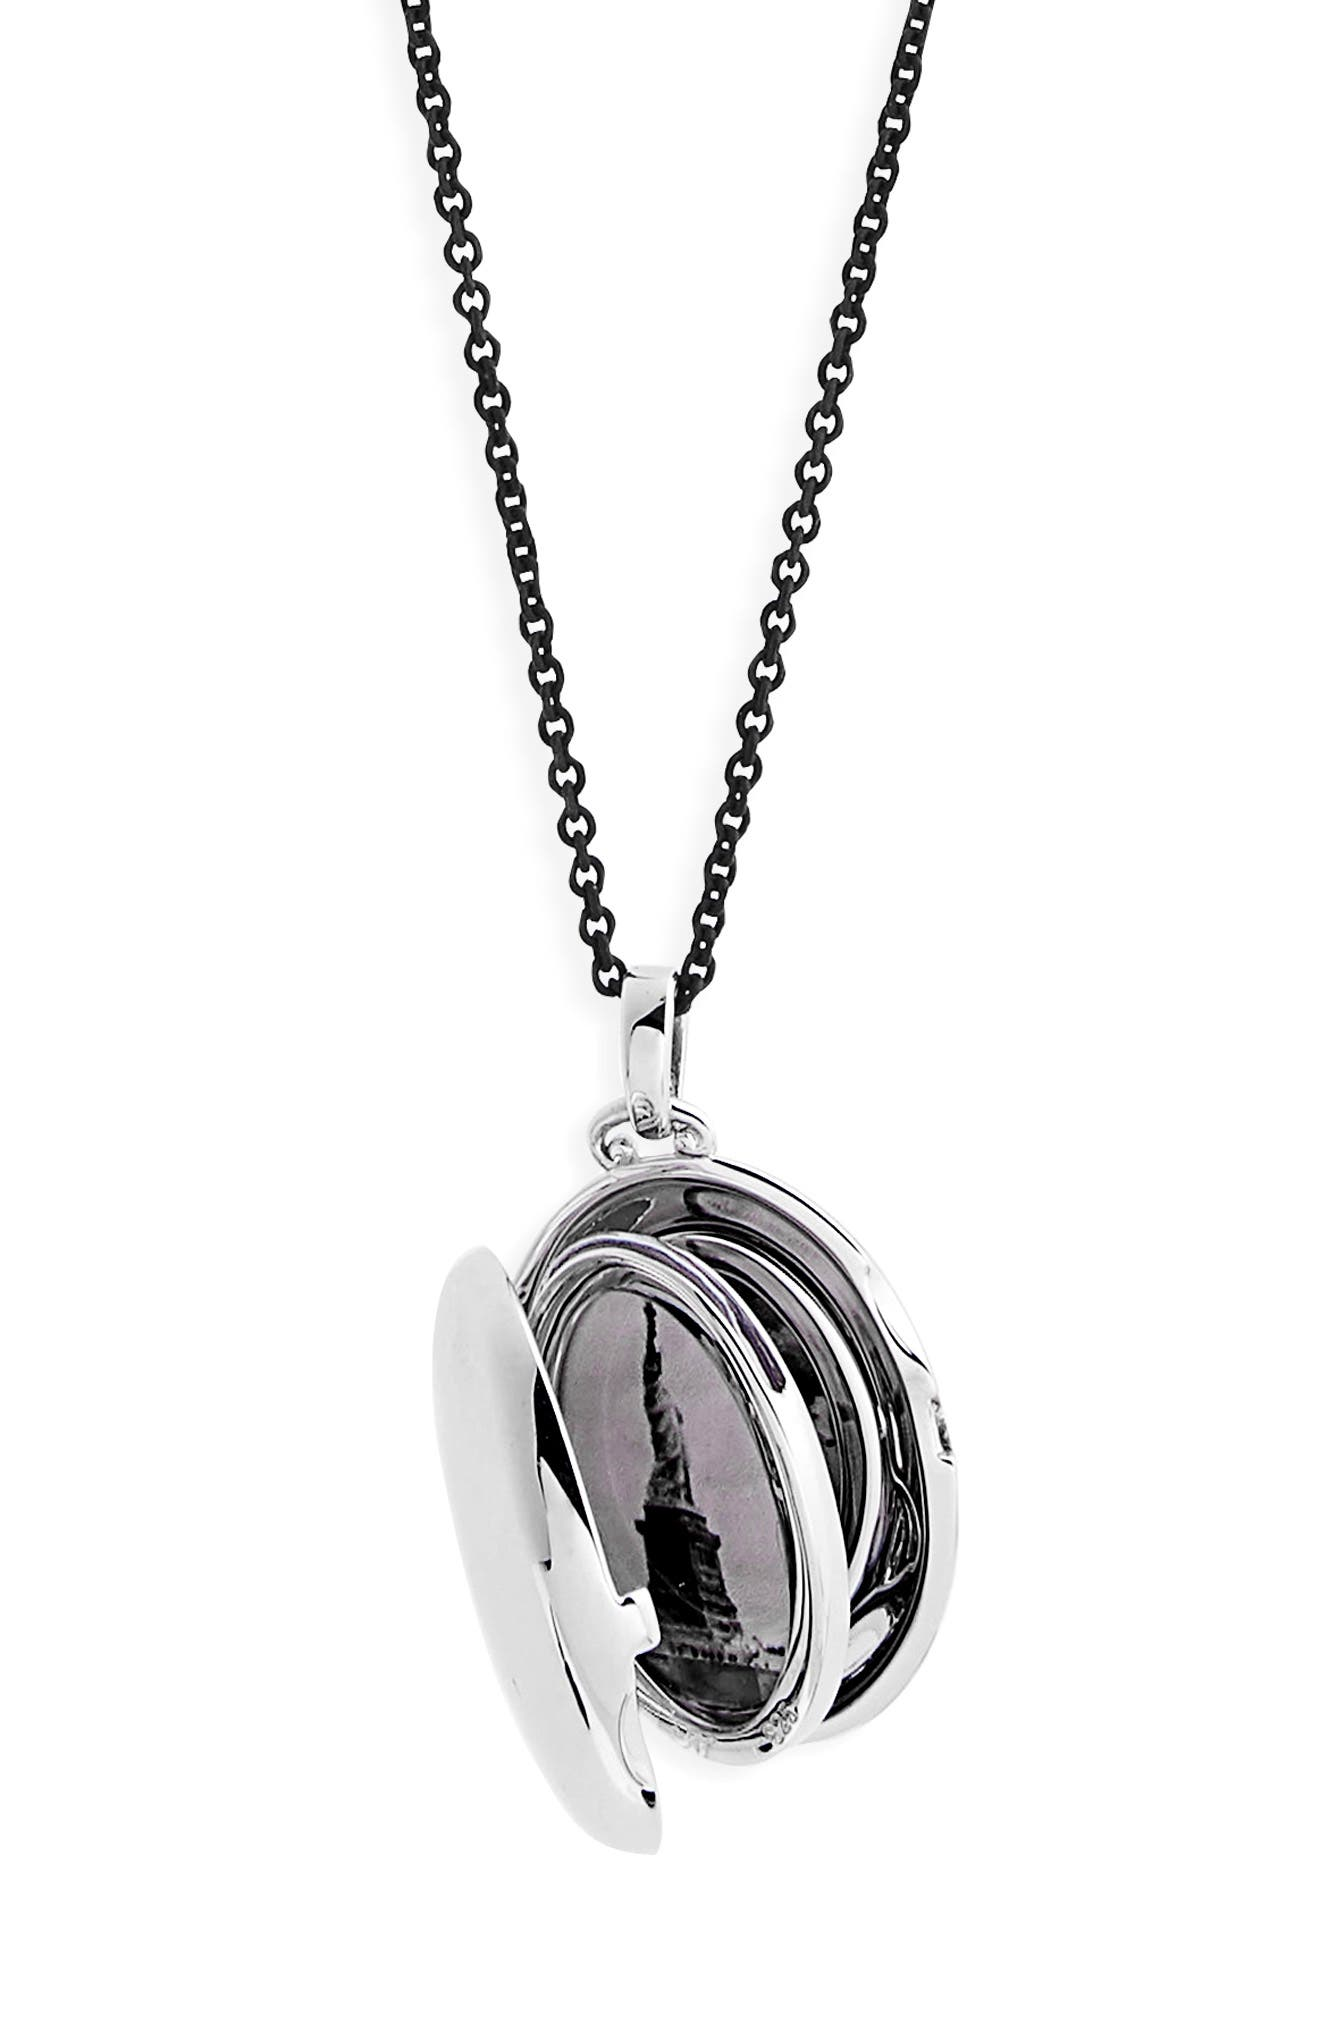 Four Image Mini Locket Necklace,                             Alternate thumbnail 2, color,                             Sterling Silver/ Black Steel